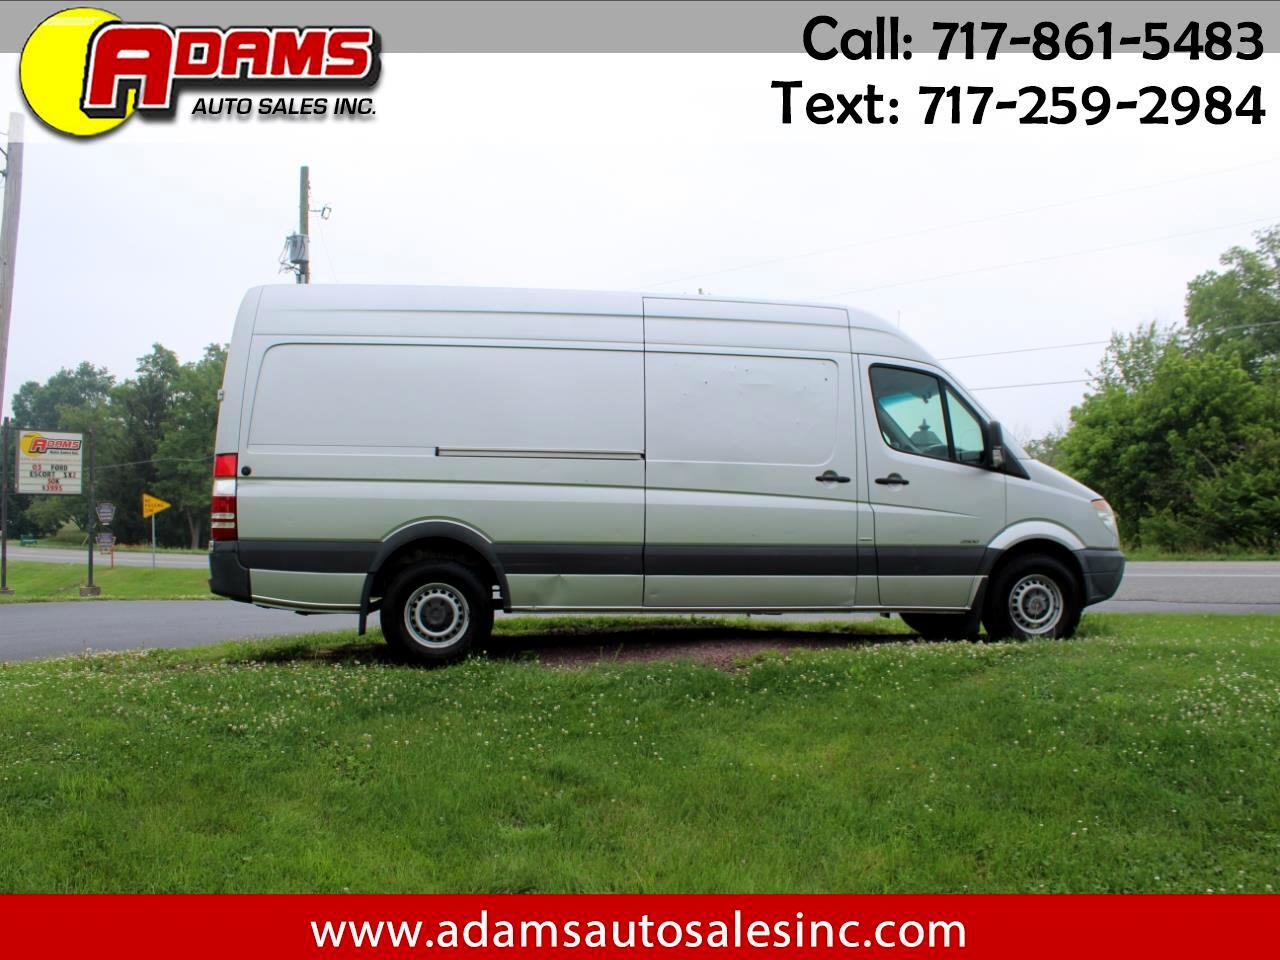 2011 Mercedes-Benz Sprinter Cargo Vans 2500 170